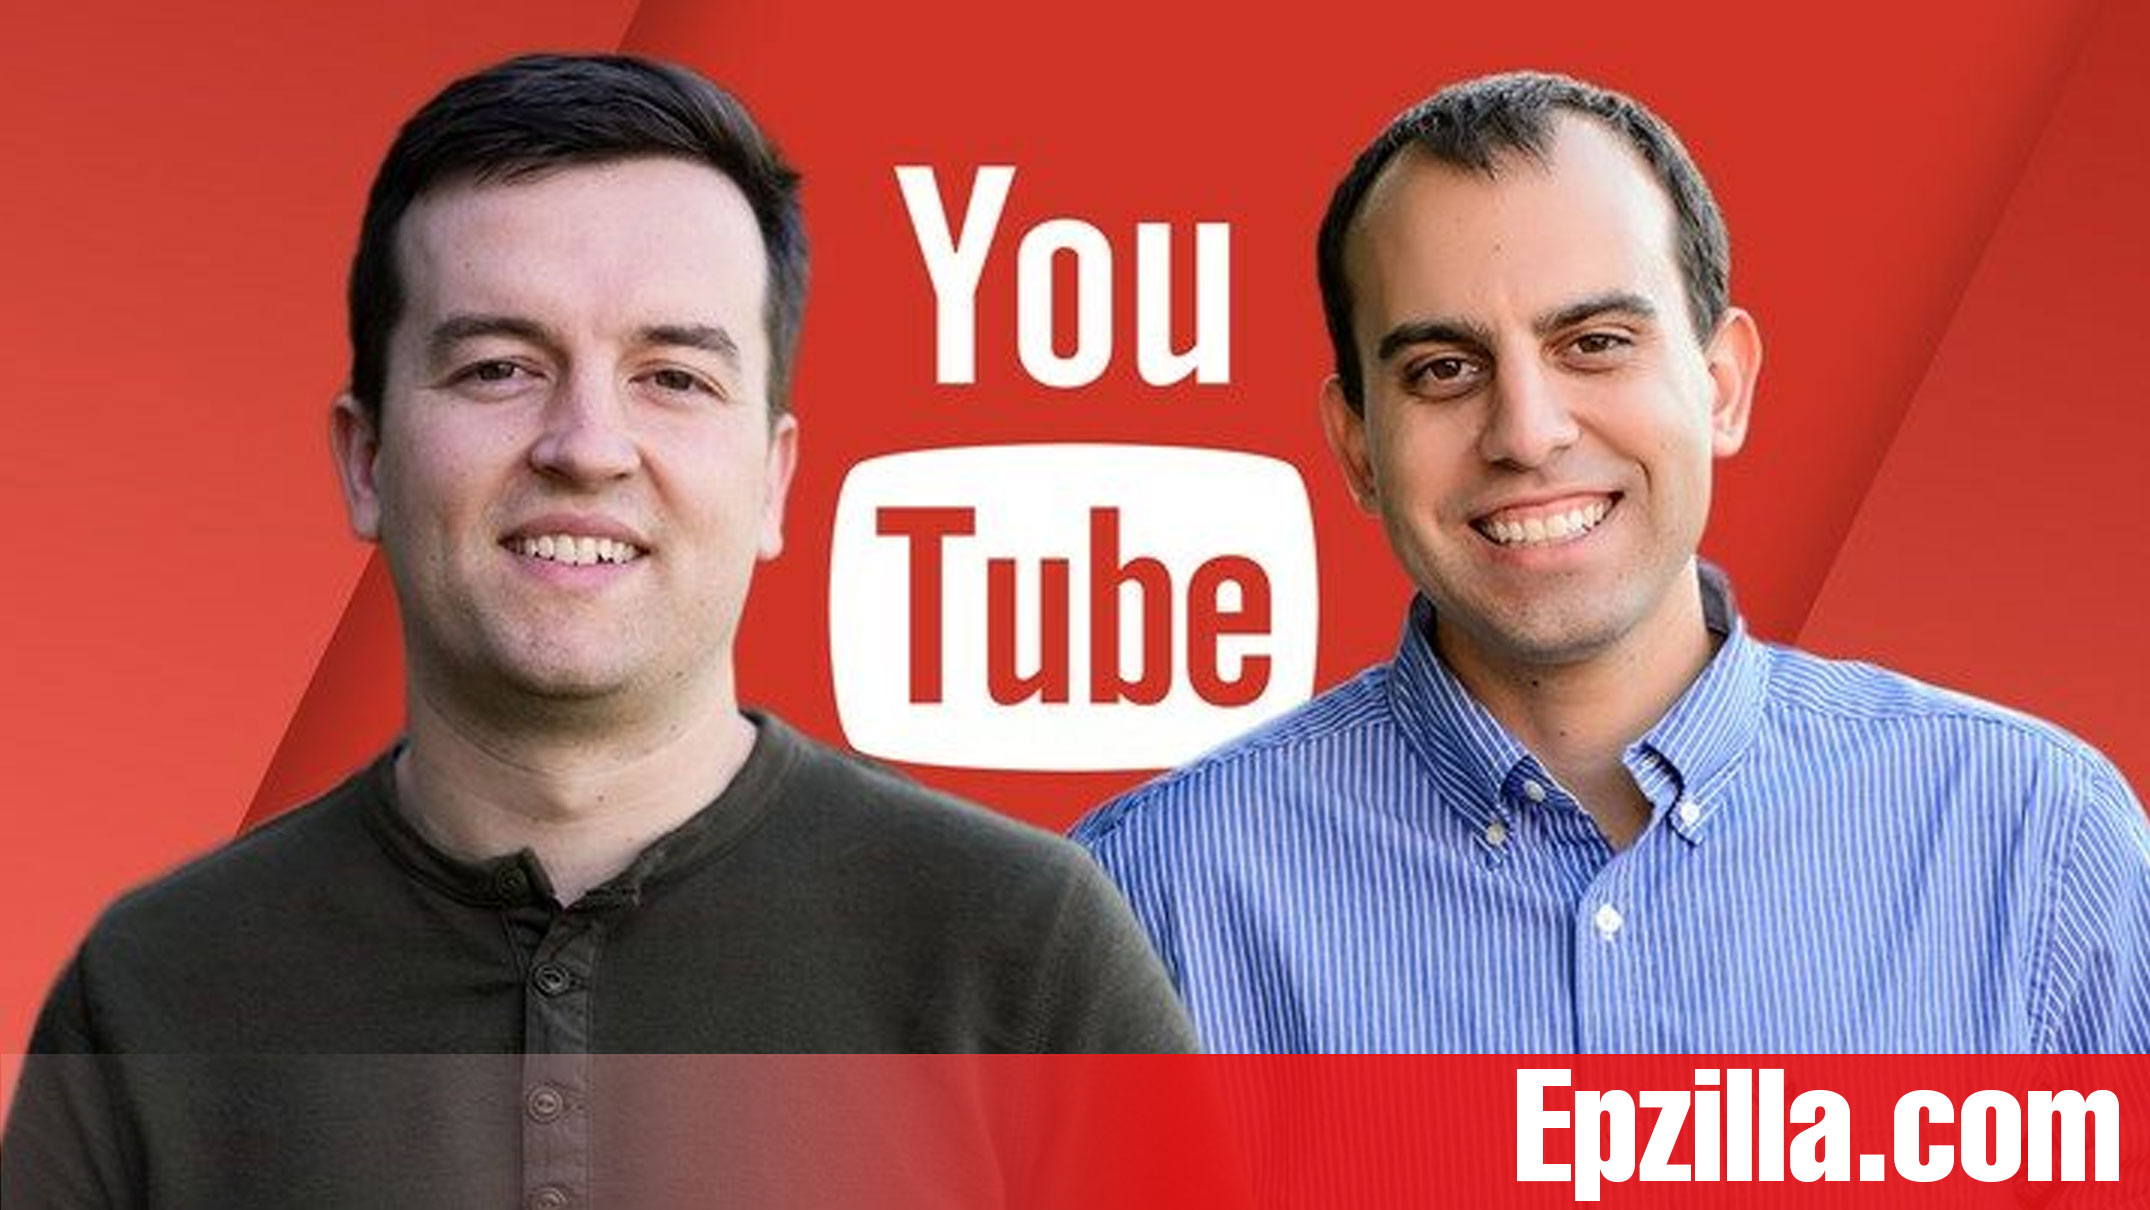 Udemy YouTube Masterclass Your Complete Guide to YouTube Free Download Epzilla.com